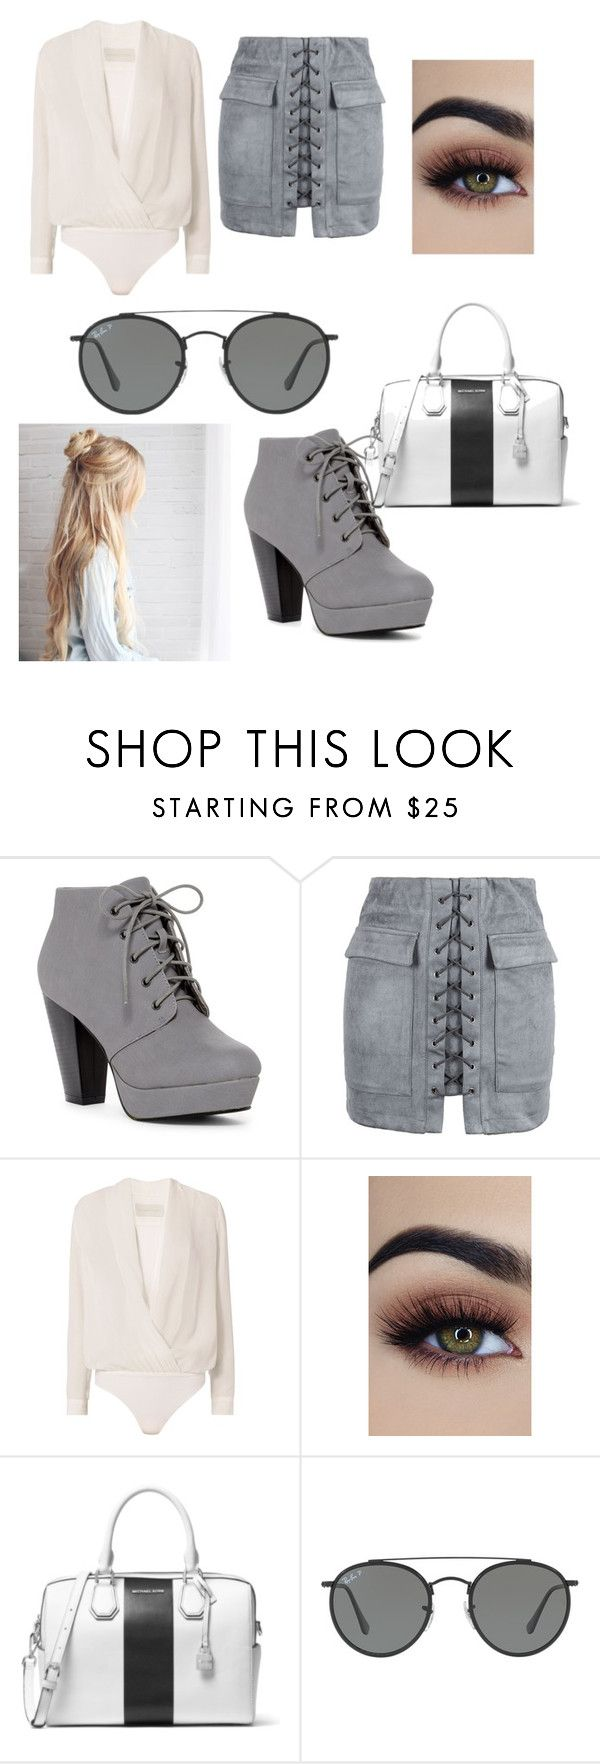 """""""On my grind"""" by lexihagen ❤ liked on Polyvore featuring WithChic, Michelle Mason, MICHAEL Michael Kors and Ray-Ban"""